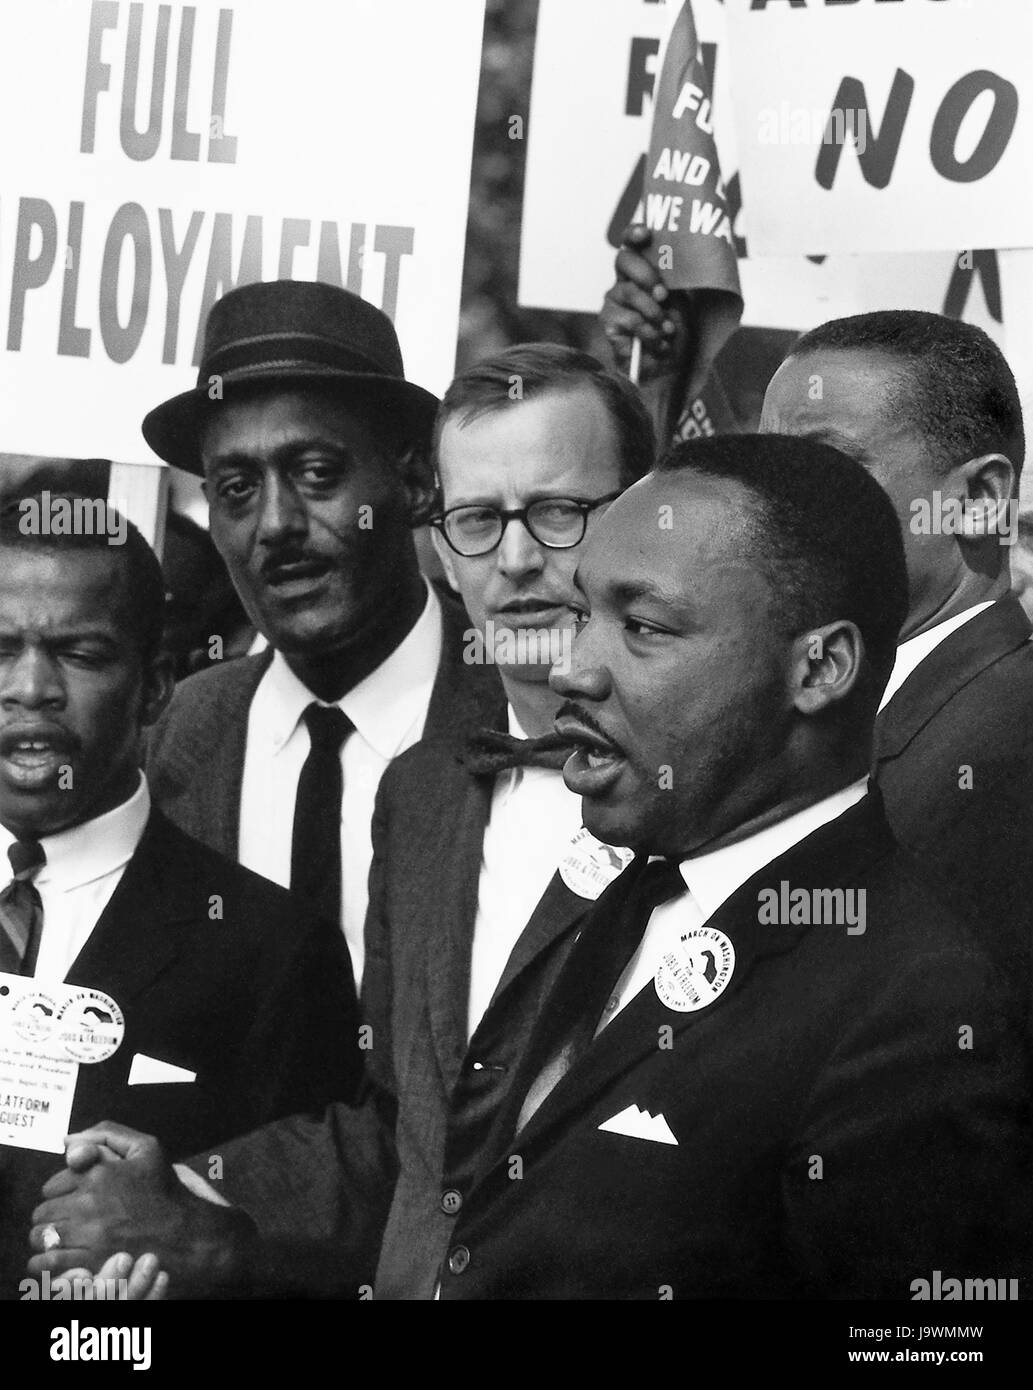 Dr. Martin Luther King, Jr., President of the Southern Christian Leadership Conference, and Mathew Ahmann, Executive - Stock Image